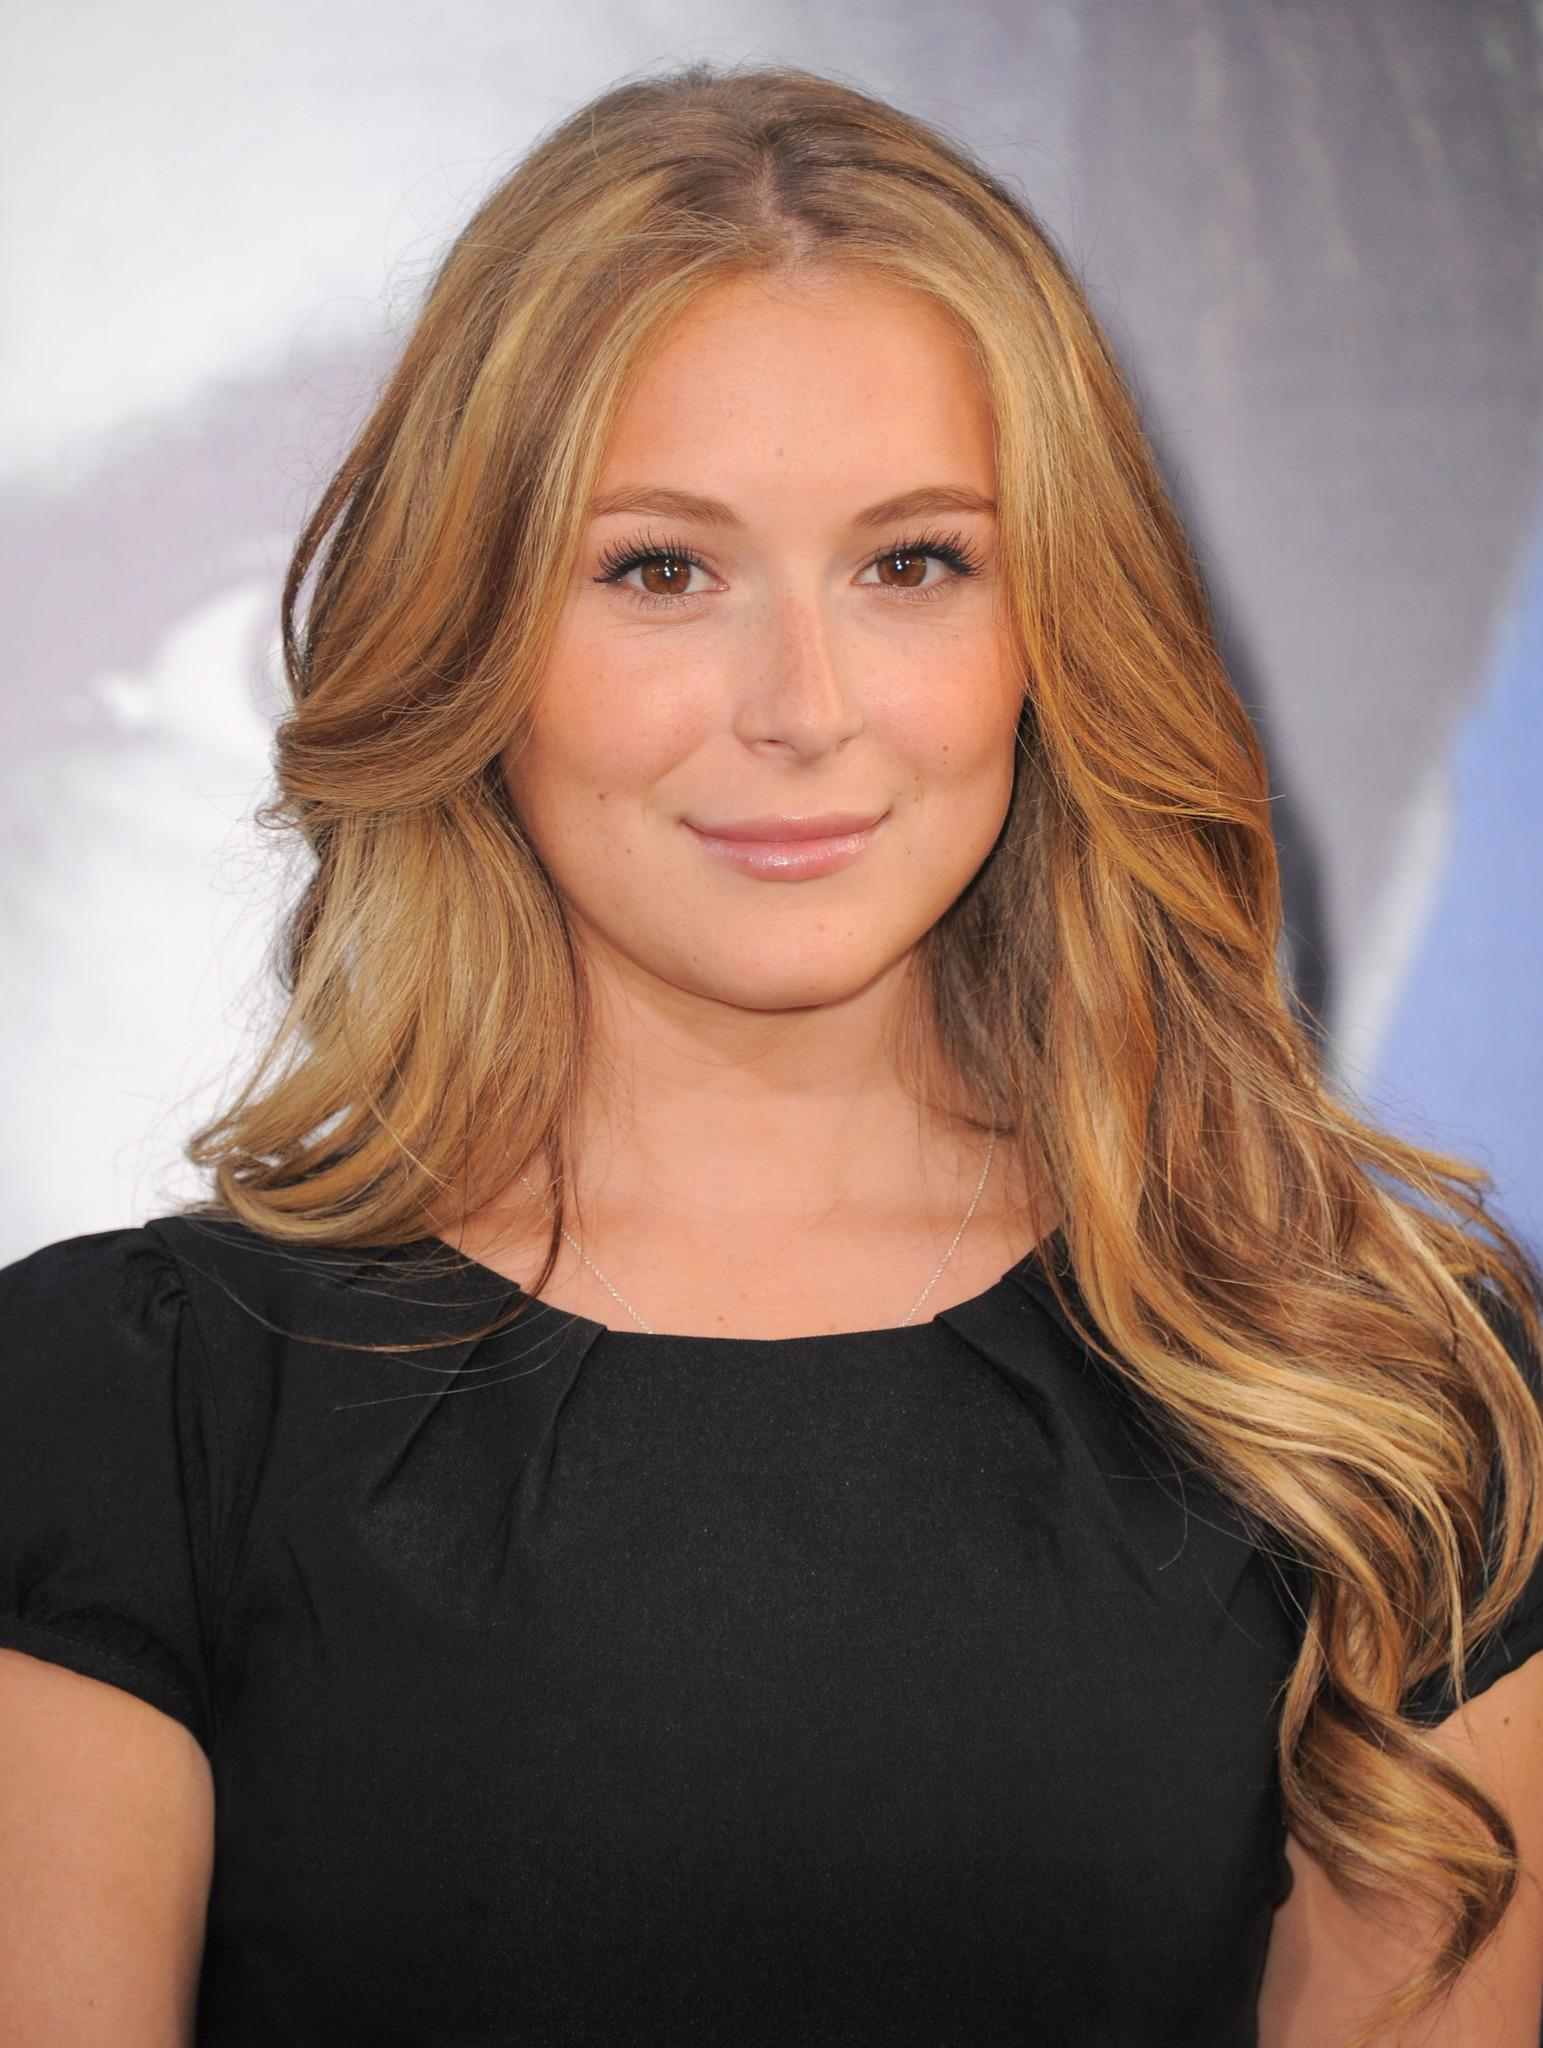 Alexa PenaVega - Big Time Rush Wiki